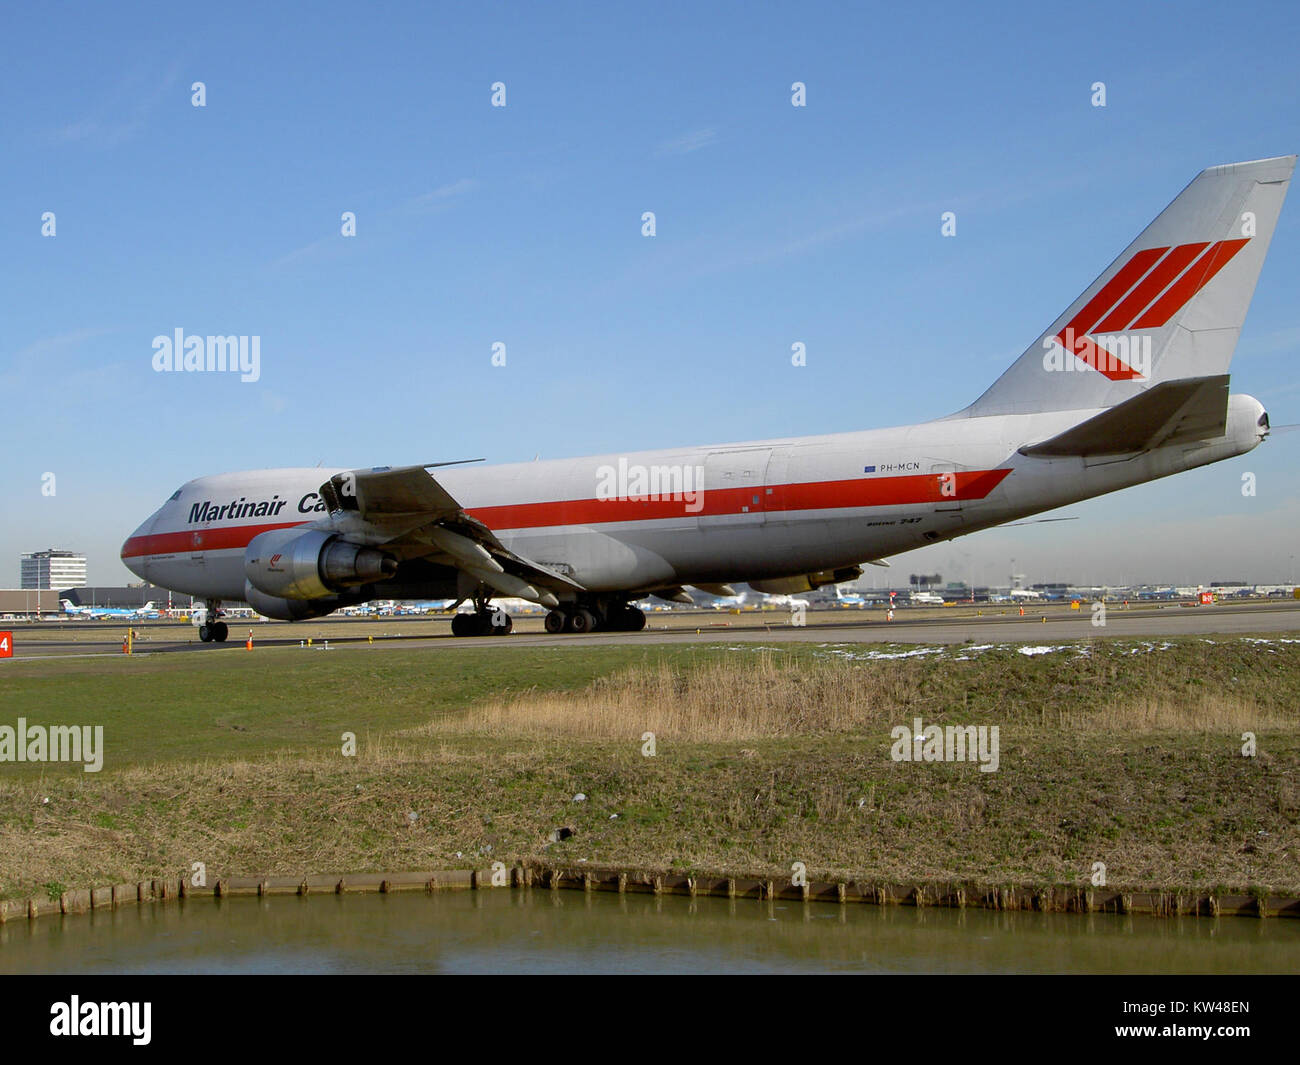 Boeing 747 Martinair Cargo PH MCN at Schiphol pic2 - Stock Image